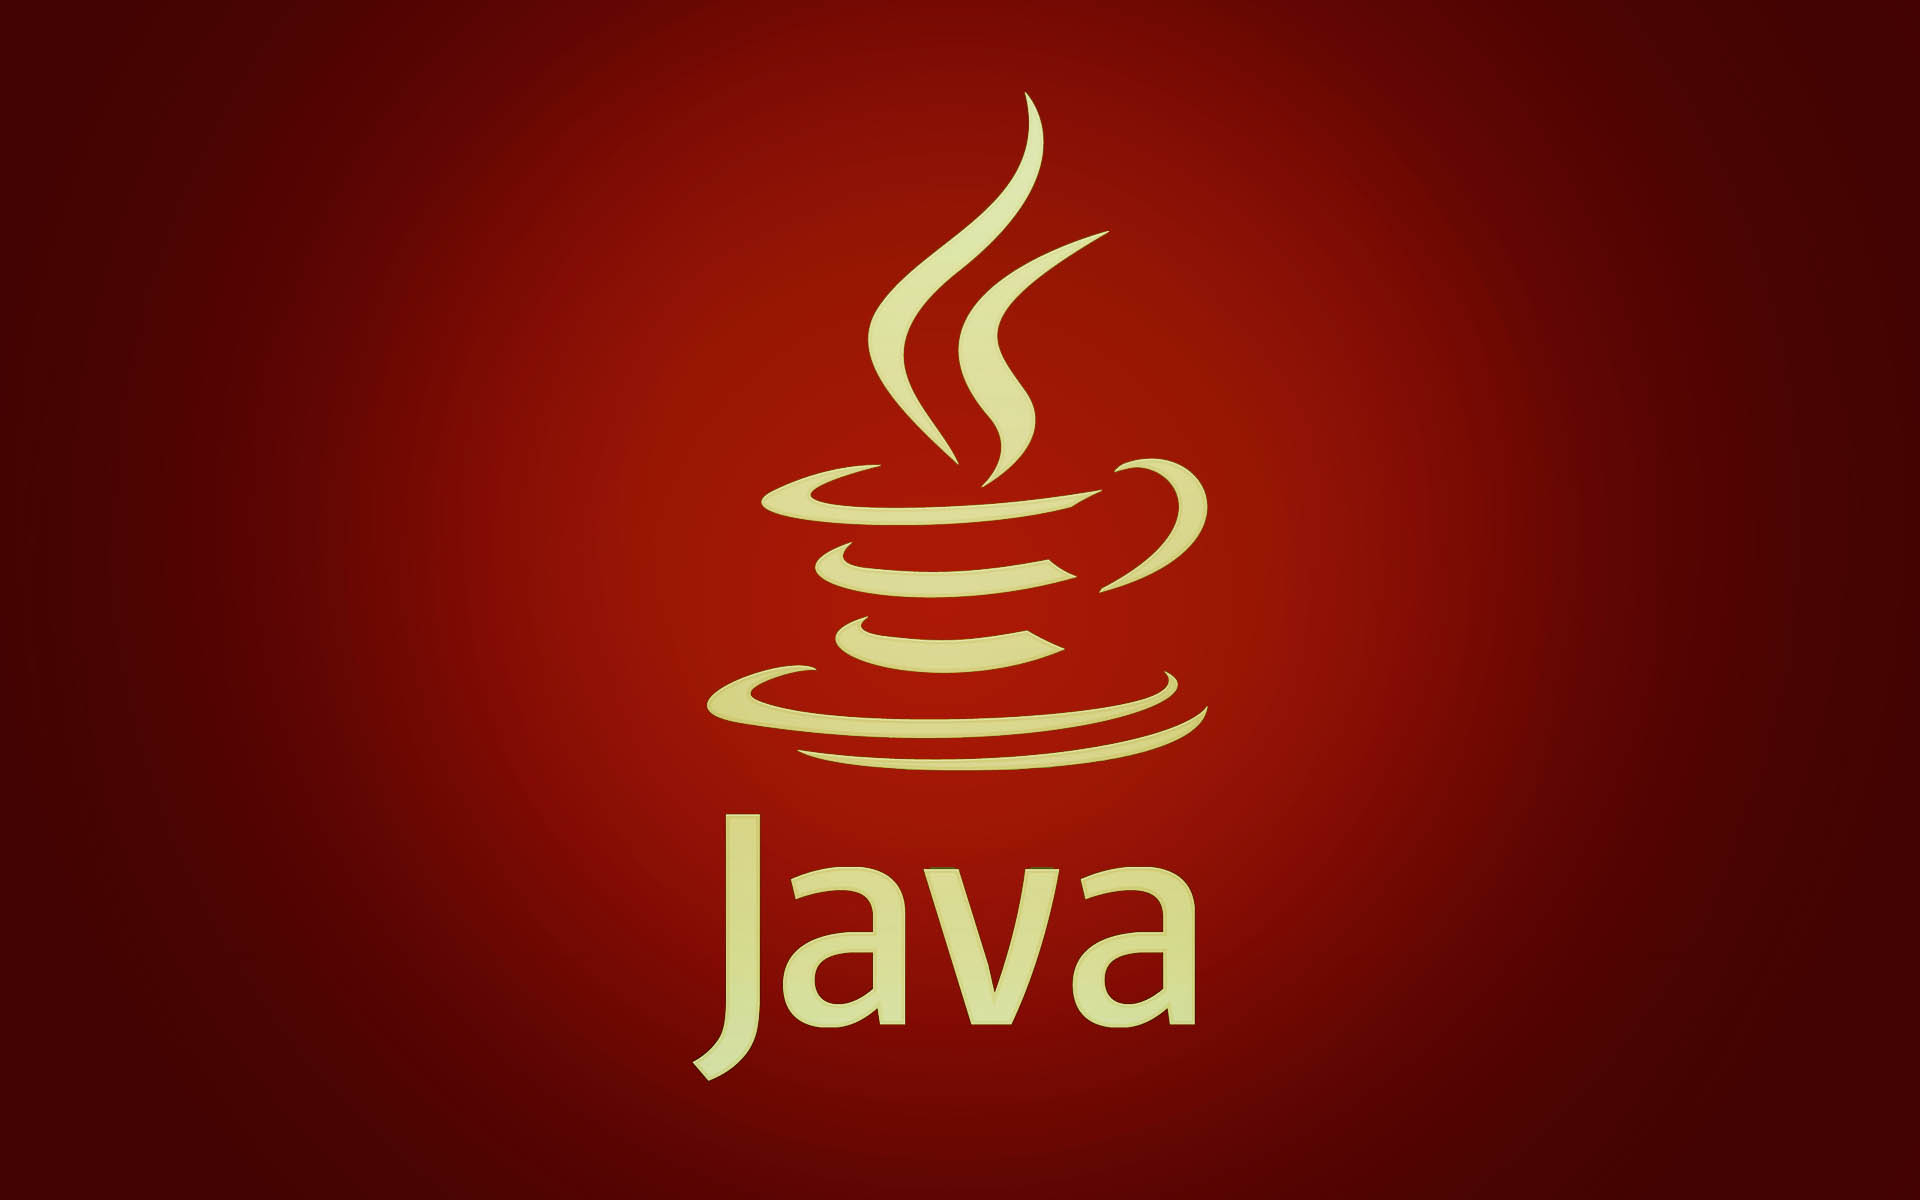 Java 9 The Advanced Java SE 9 Platform & its Dynamic Features